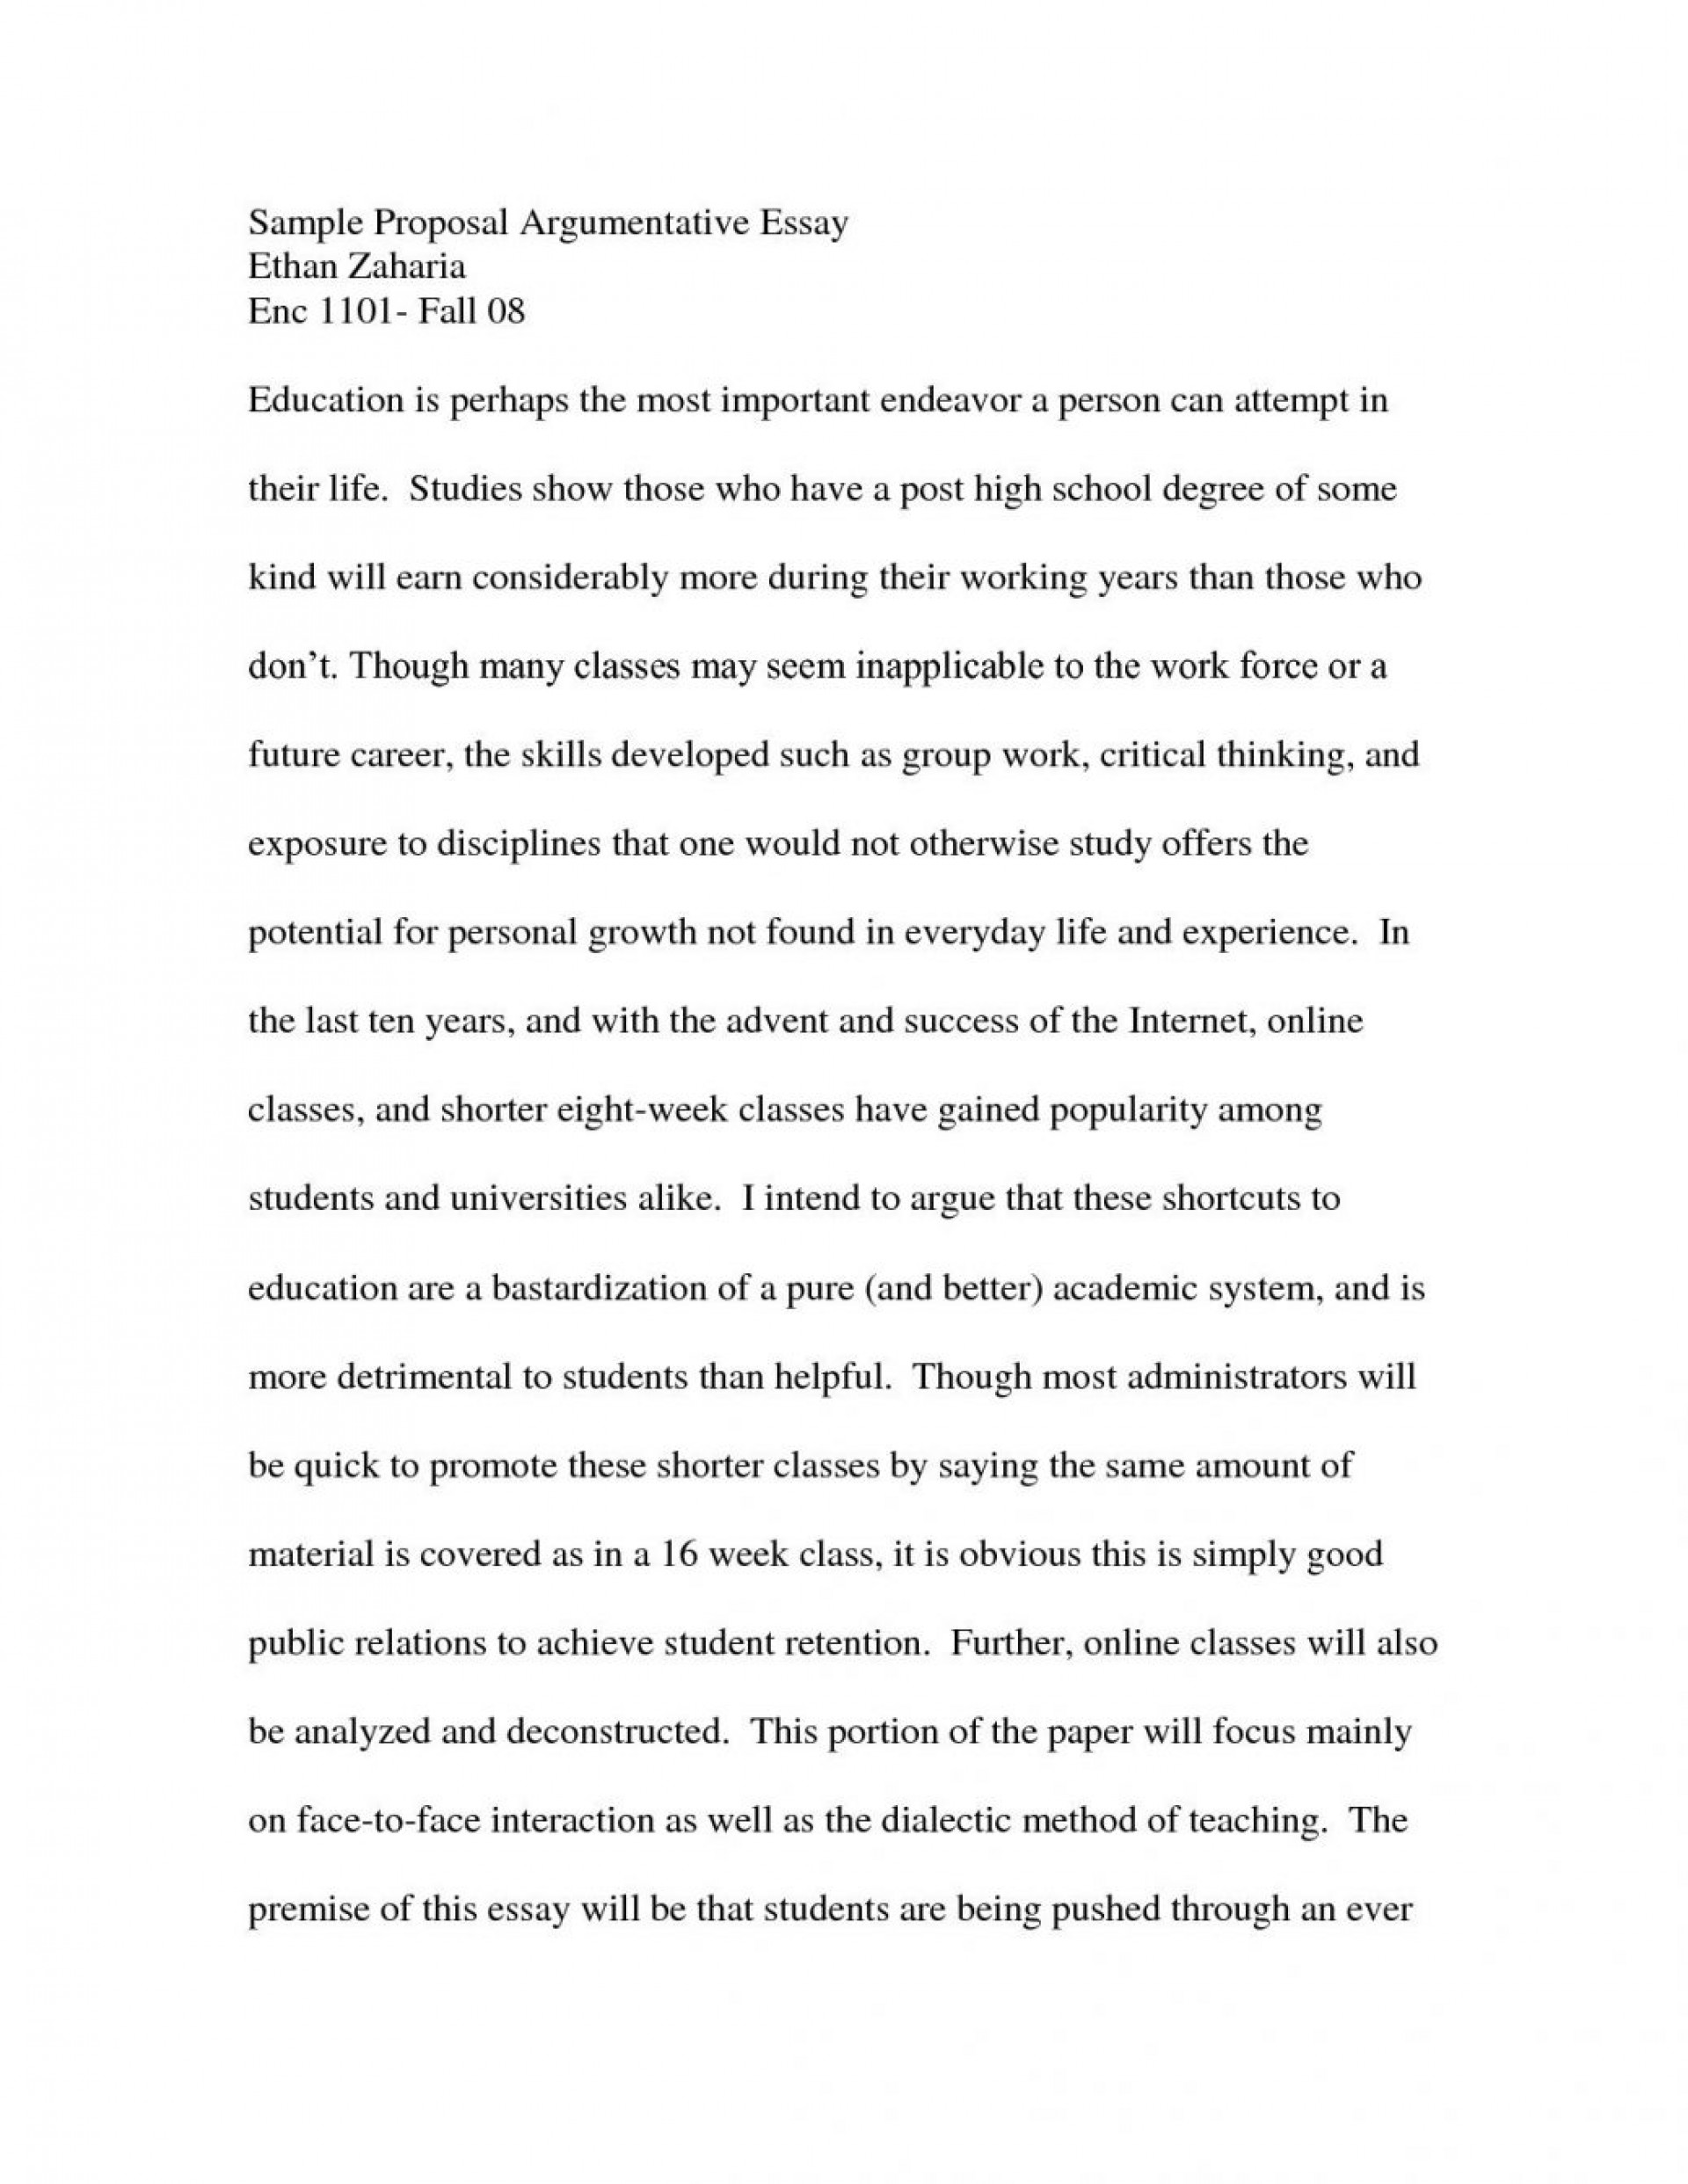 014 Example Ofmentative Research Paper Good Essay Tremendous Image Ideas Template Awesome Collection High School Sample 1038x1343 Fearsome For Papers Topic 1920